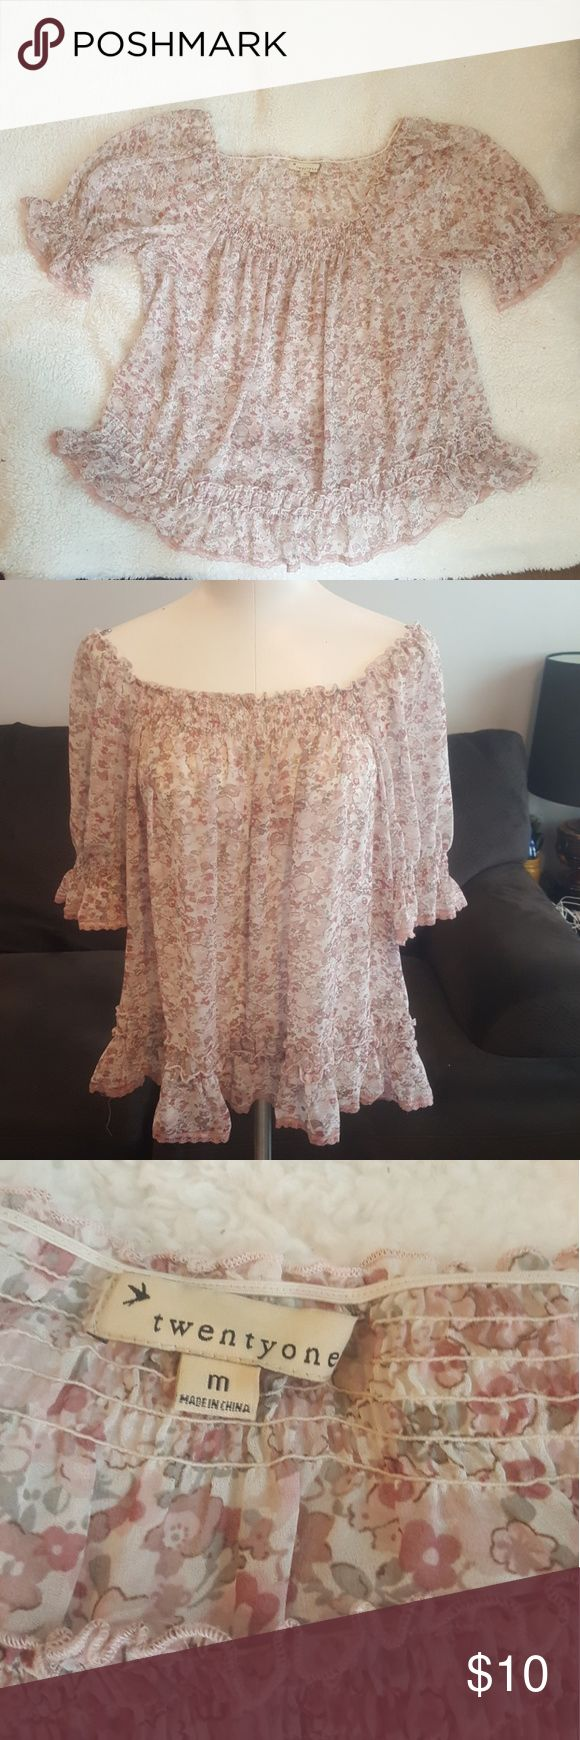 Sheer floral blouse Such a versatile top! I typically wear an xxs-s in tops but opted for a M for a more loose fitting and off the shoulder look. This top will fit xxs-L depending on the fit you are going for. Such a beautiful and delicate floral print! Forever 21 Tops